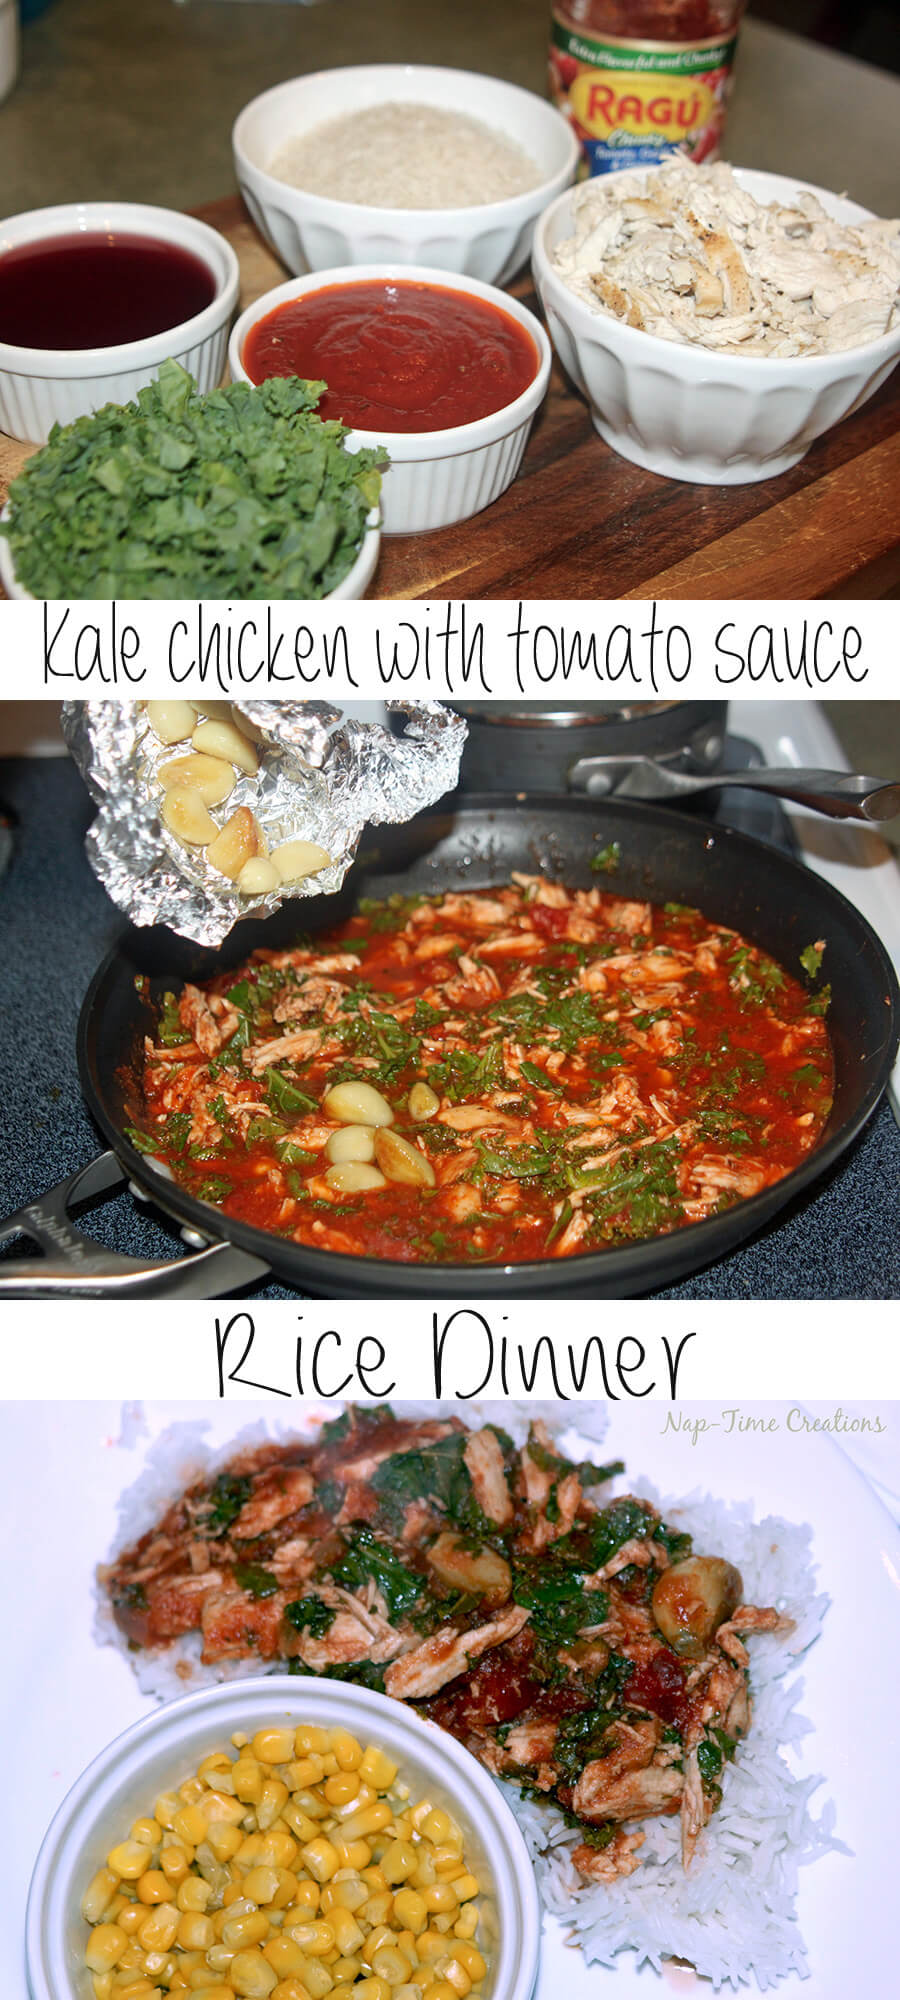 Kale Chicken with Ragu Rice on Nap-Time Creations